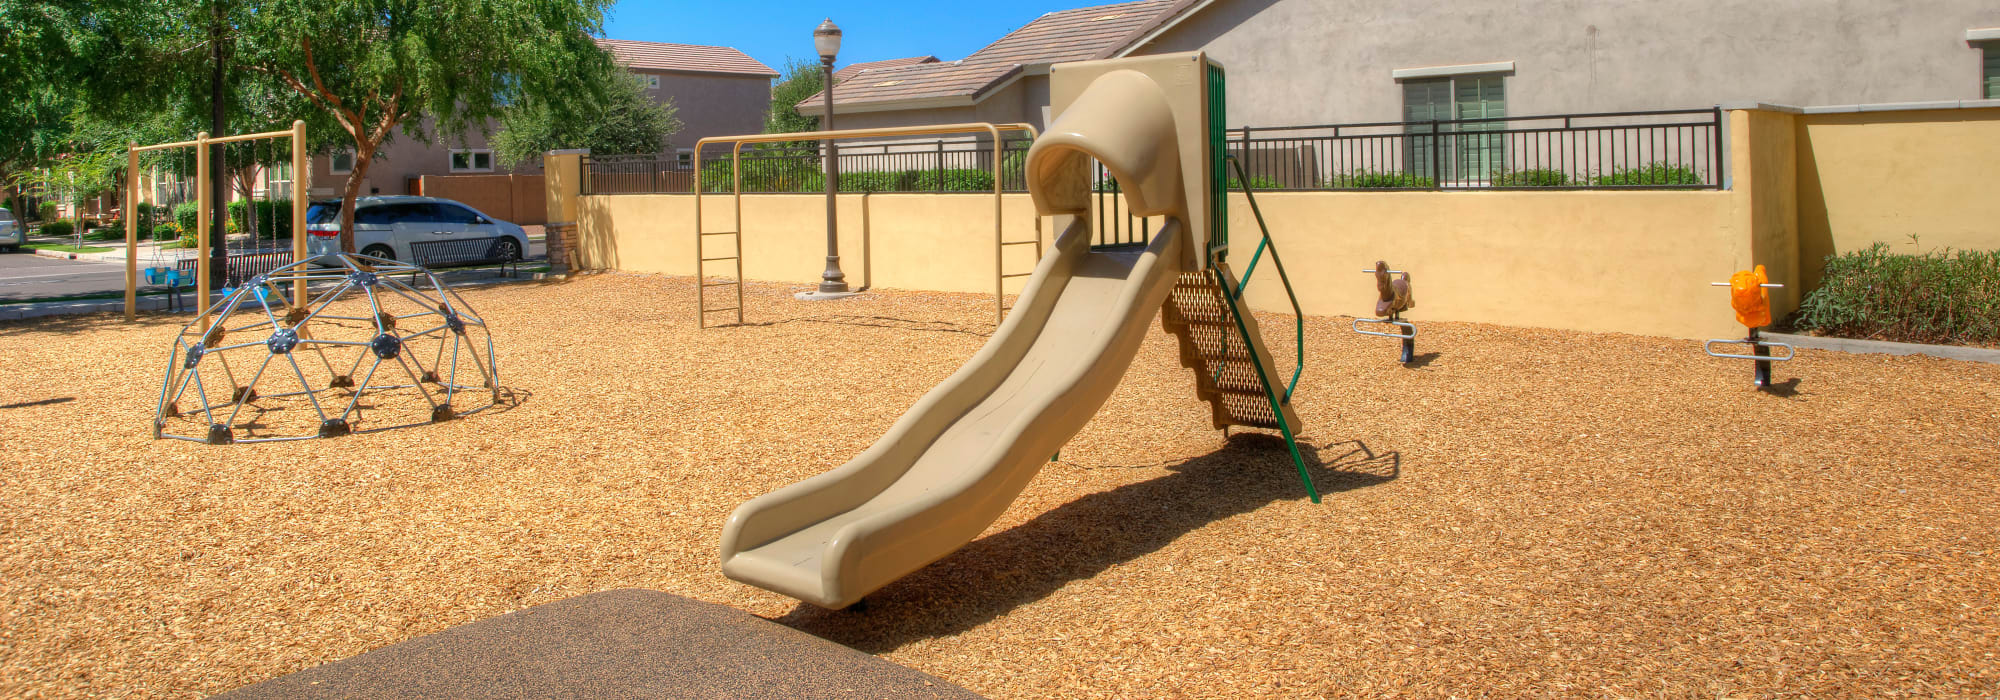 Children's playground at BB Living at Higley Park in Gilbert, Arizona